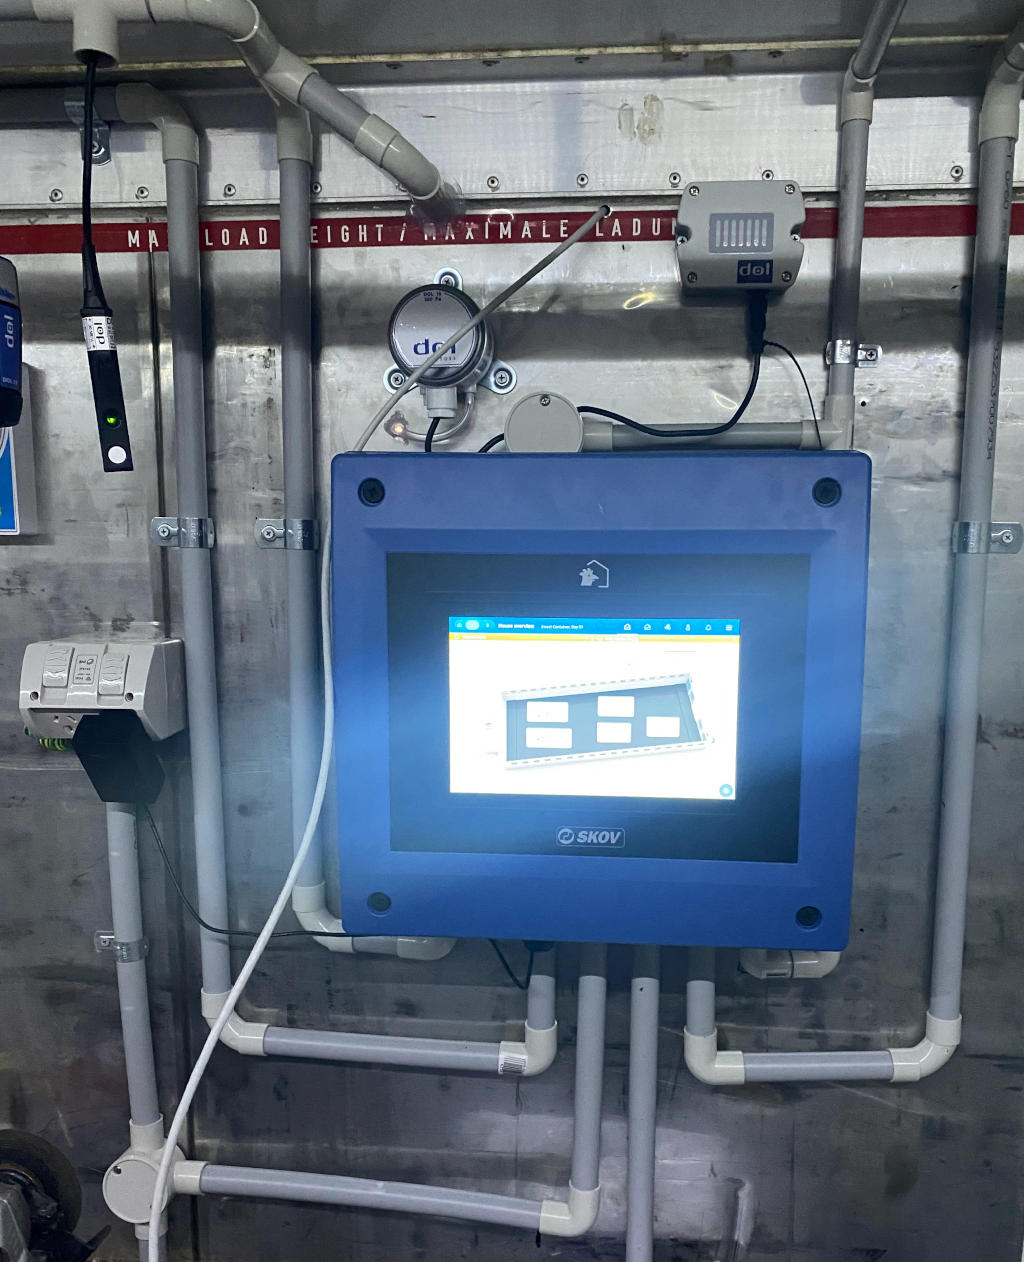 Photo of a large scale insect farm climate control box. Comprises of a large square blue box with screen and tubing coming from it.